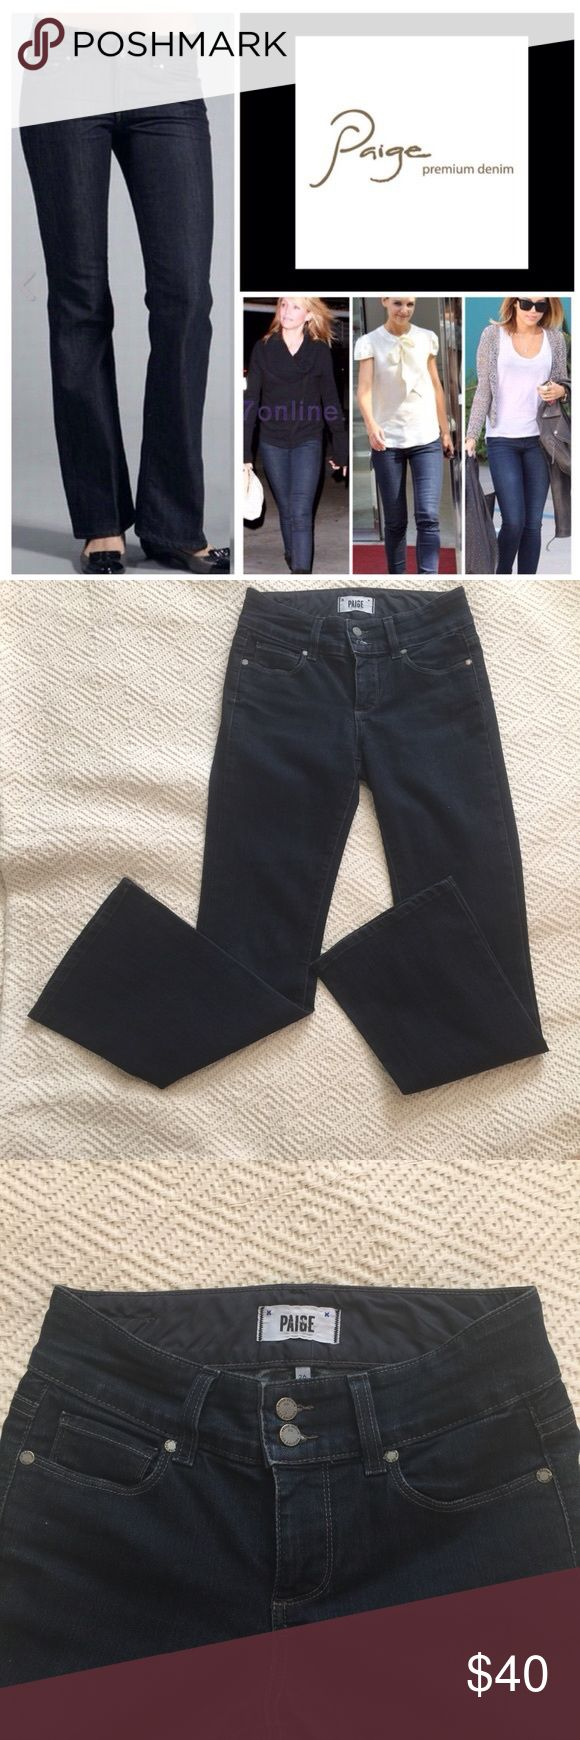 "Paige Premium Denim Jeans Hidden Hills Petite 26 Amazing jeans by Paige! Gently used condition. Size 26 with 29"" inseam. Zip fly with 2 button top. Paige Jeans Jeans Boot Cut"